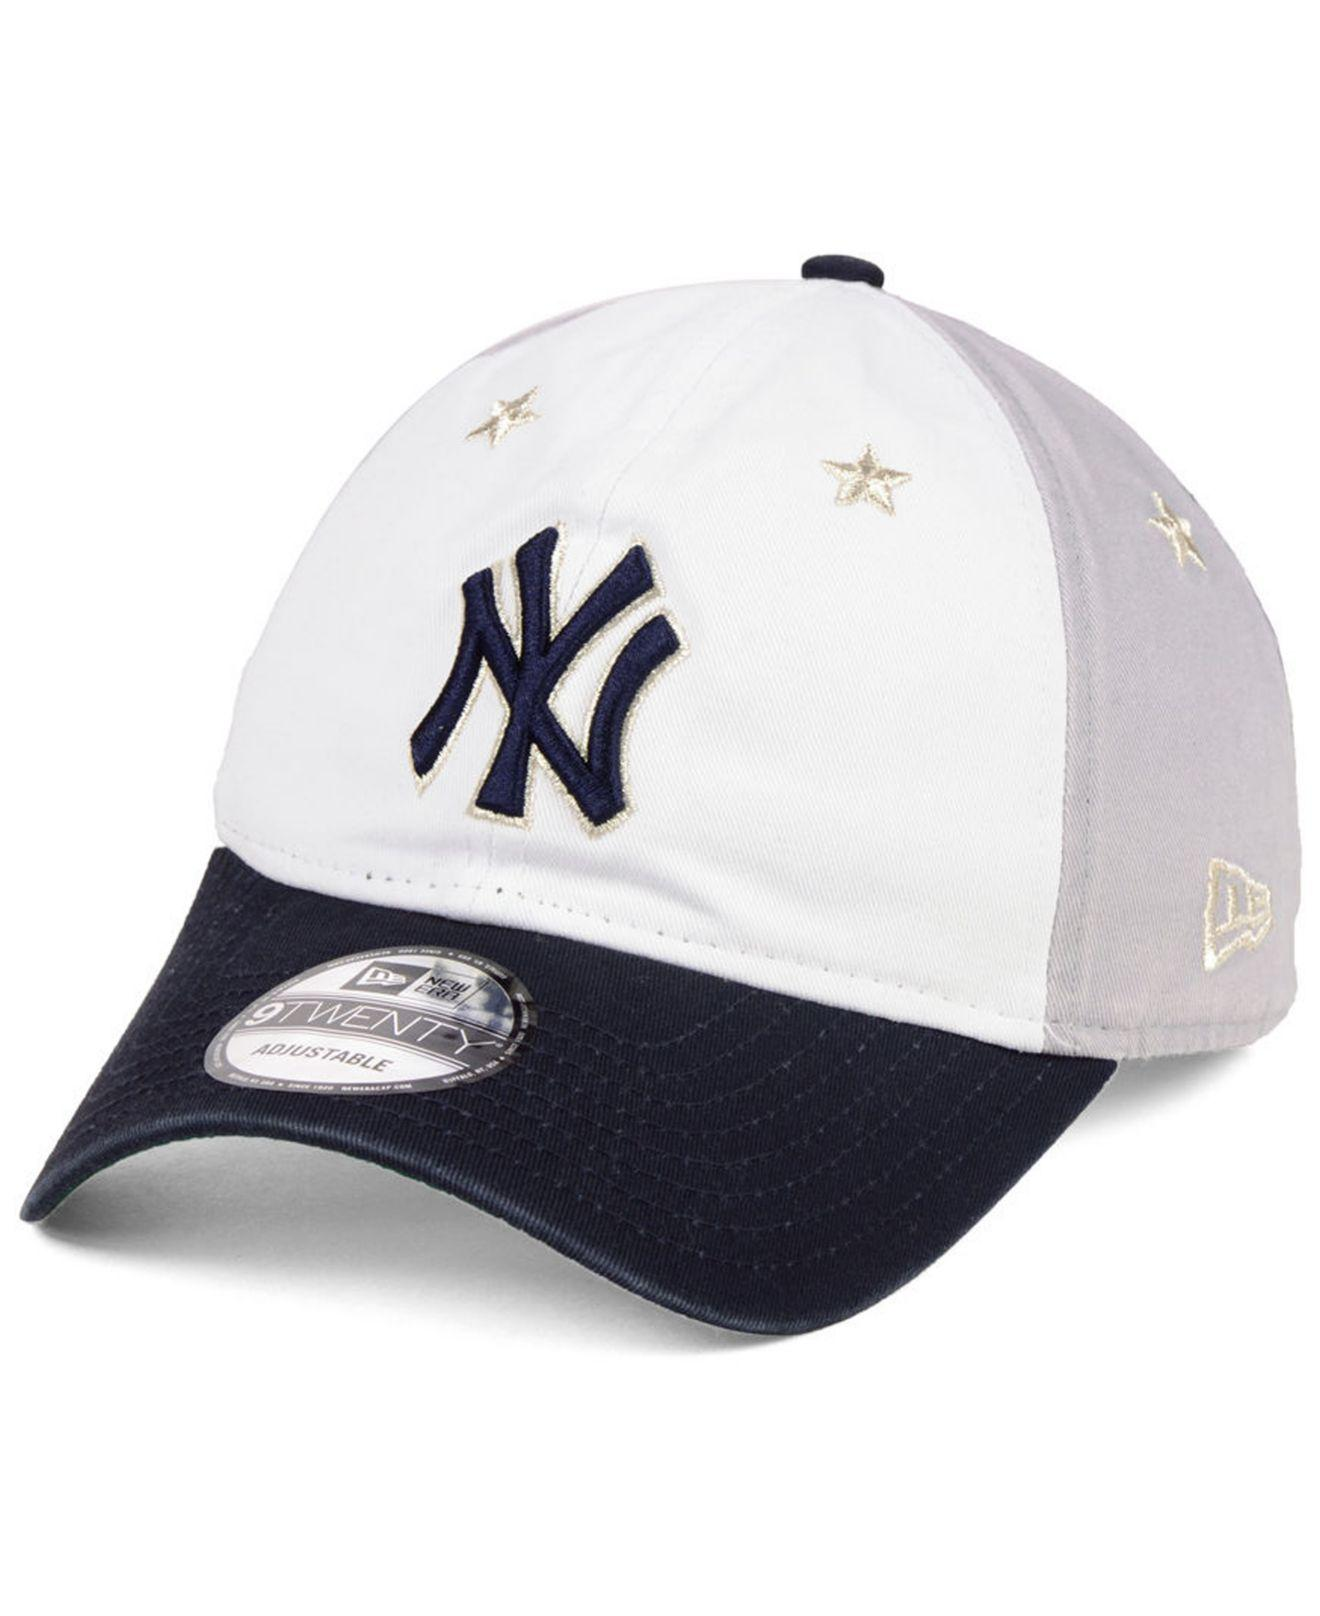 466293b0214d5 KTZ New York Yankees All Star Game 9twenty Strapback Cap 2018 in ...